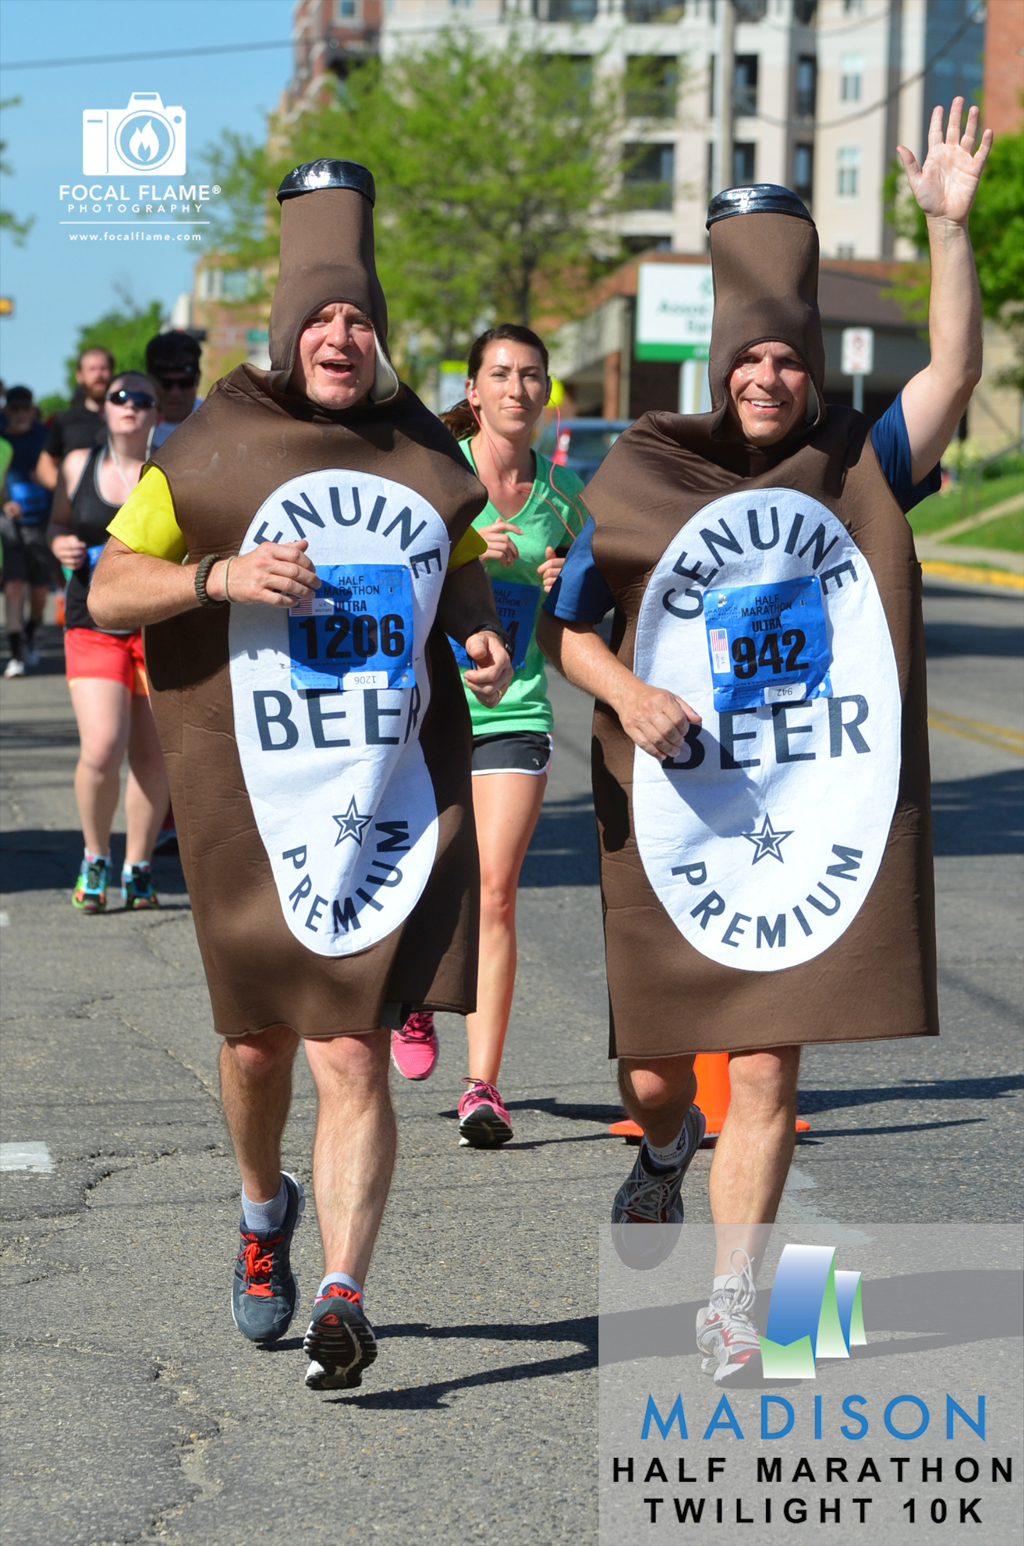 Mich and Ultra, otherwise known as Bill Enright (left) and Brent Kimbel (right), wave to fans during the 2014 Spring Madison Half Marathon. © 2014 Focal Flame Photography